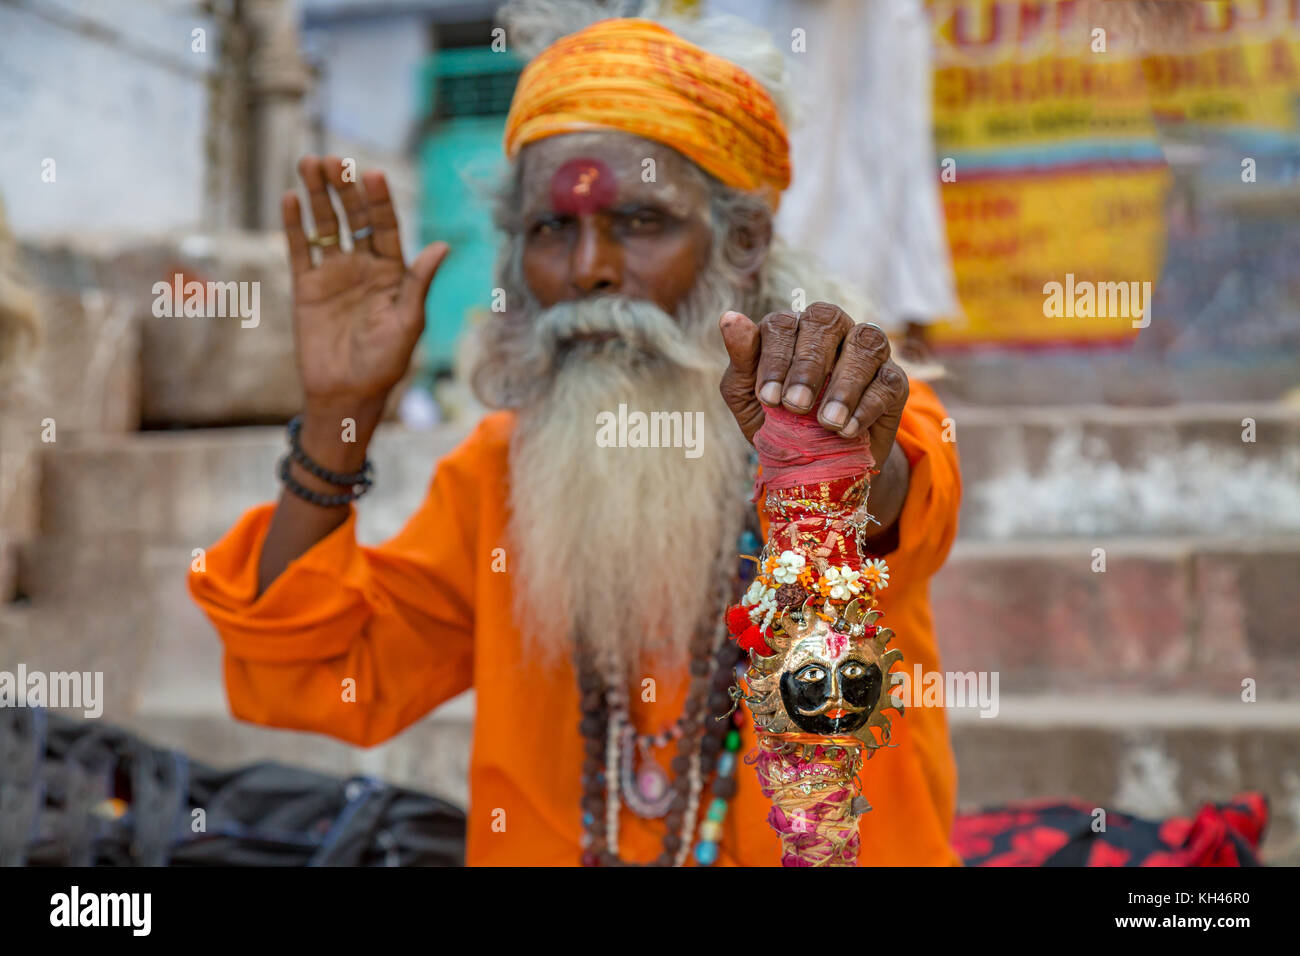 Sadhu baba pose raising the blessing hand at the Ganga river bank in Varanasi, India. - Stock Image